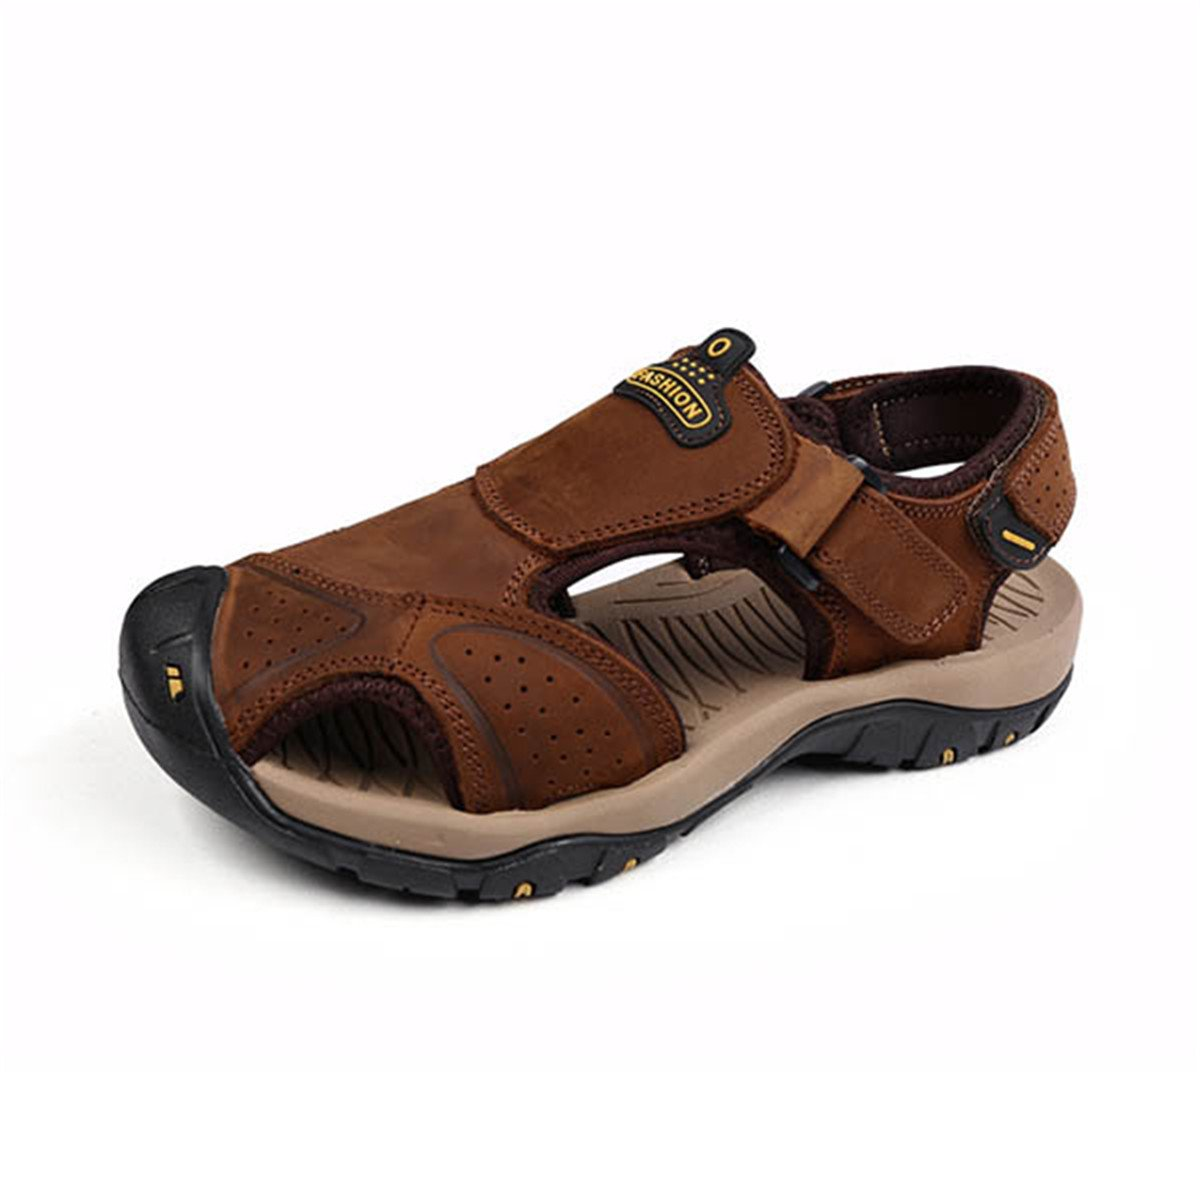 gracosy Men's Outdoor Hiking Sandals Absorption Leather Casual Sandals Anti-Collision